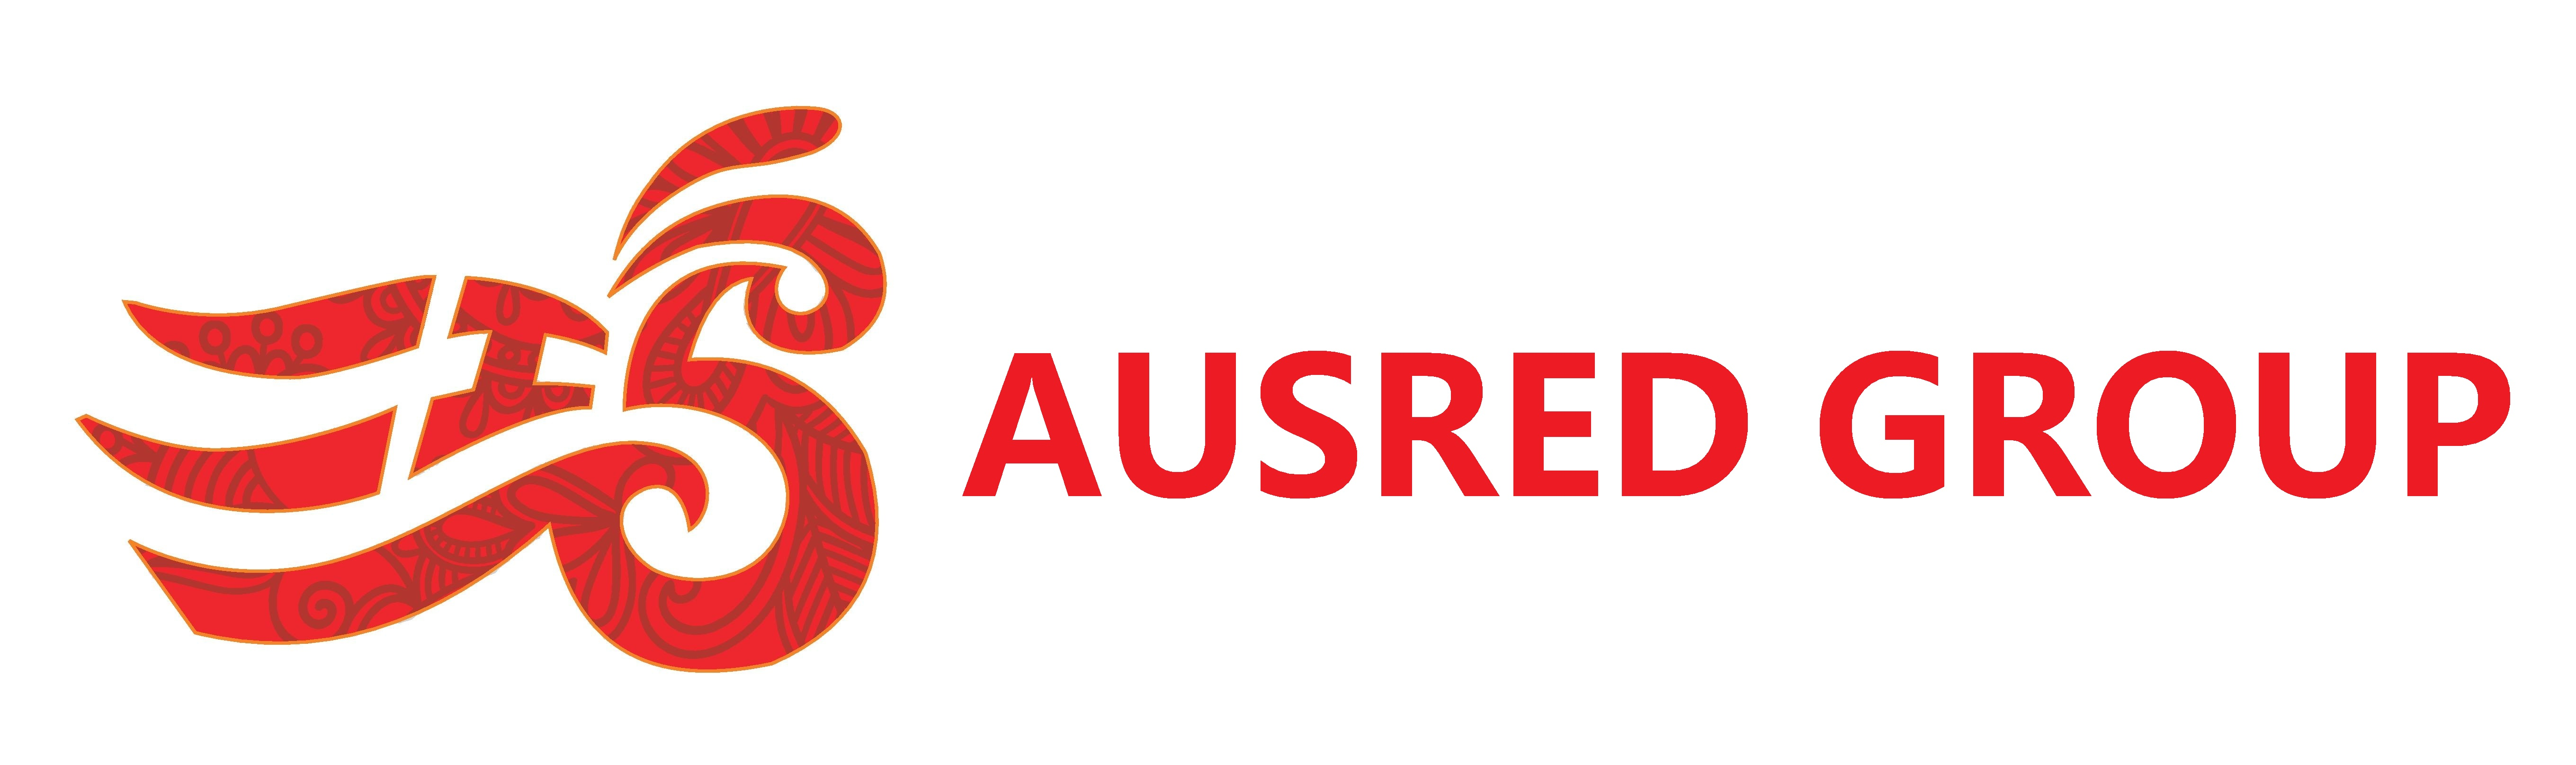 Ausred Group